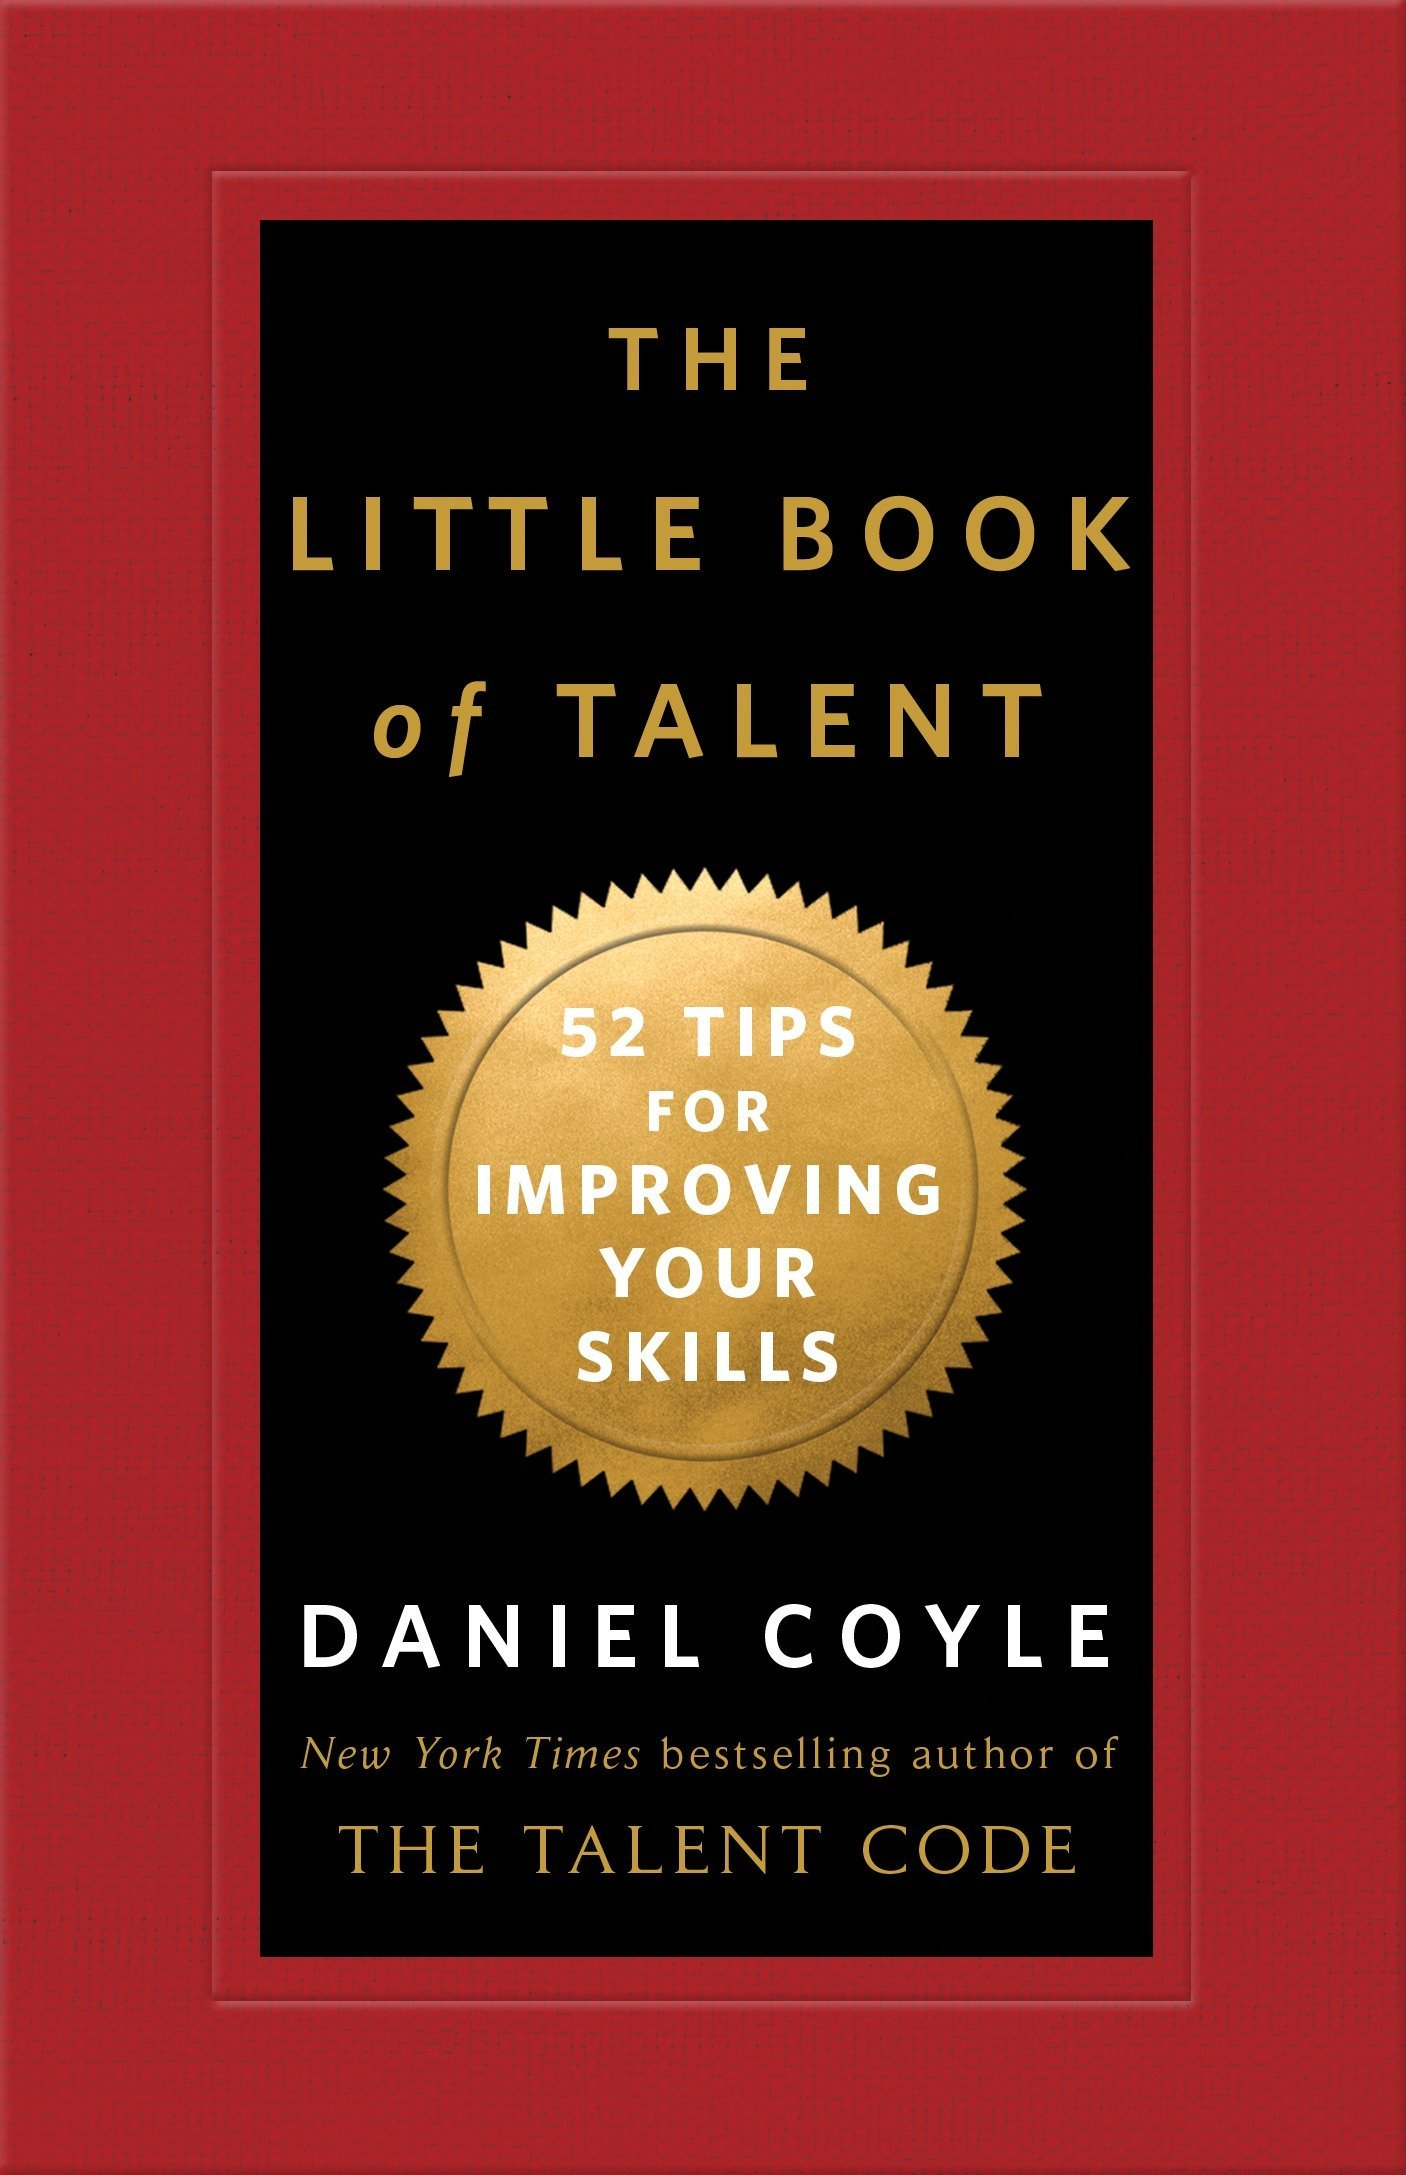 Book Review: The Little Book of Talent by Daniel Coyle